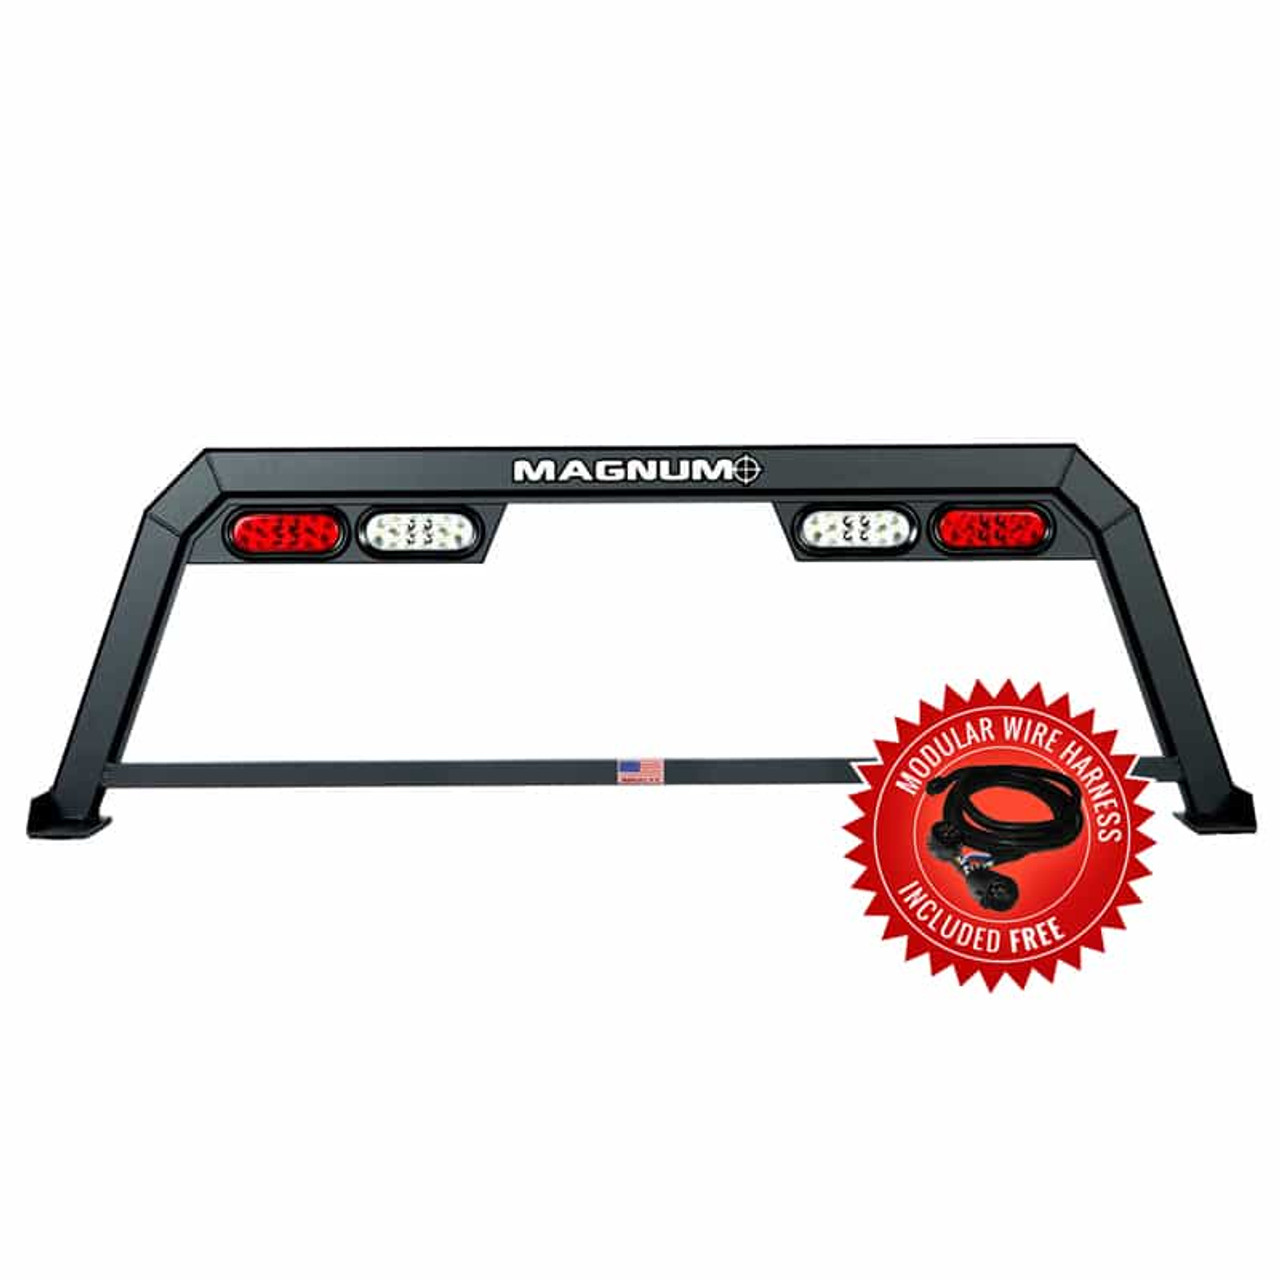 Hollow Point Truck Rack with Lights - Low Pro